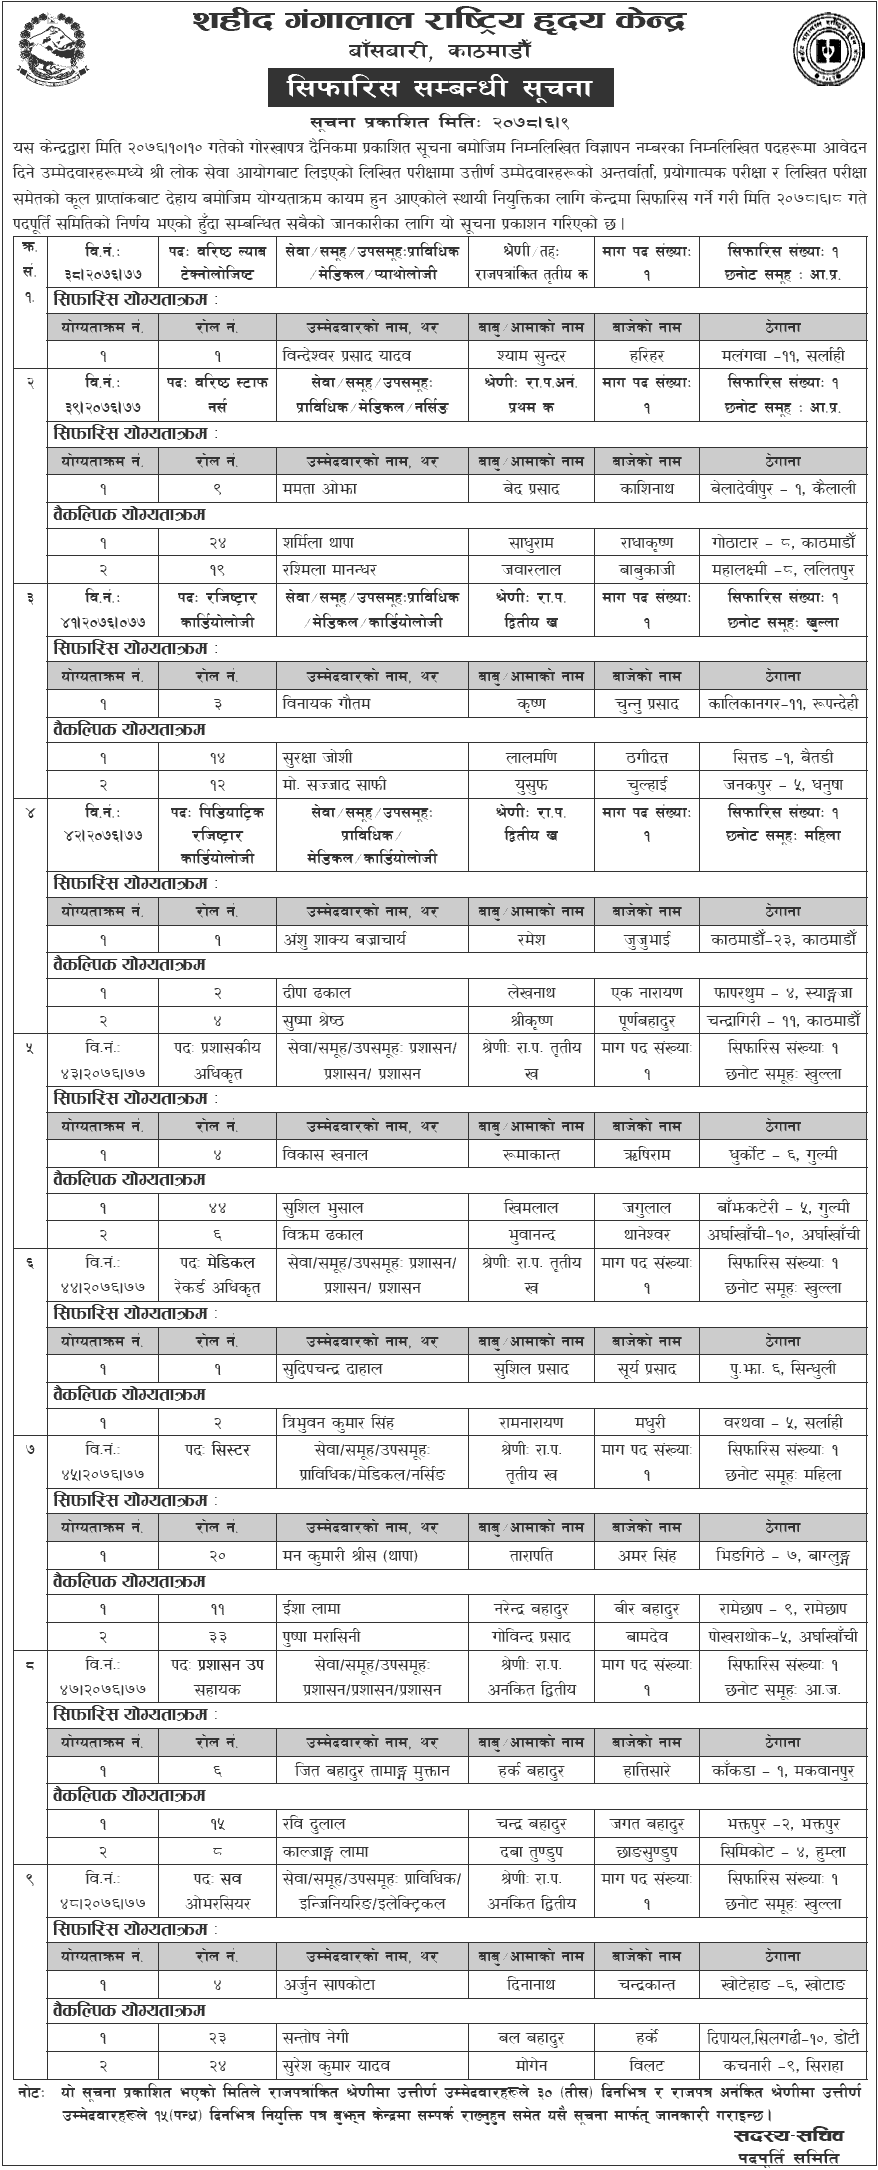 Shahid Gangalal National Heart Center Published Final Result of Various Positions